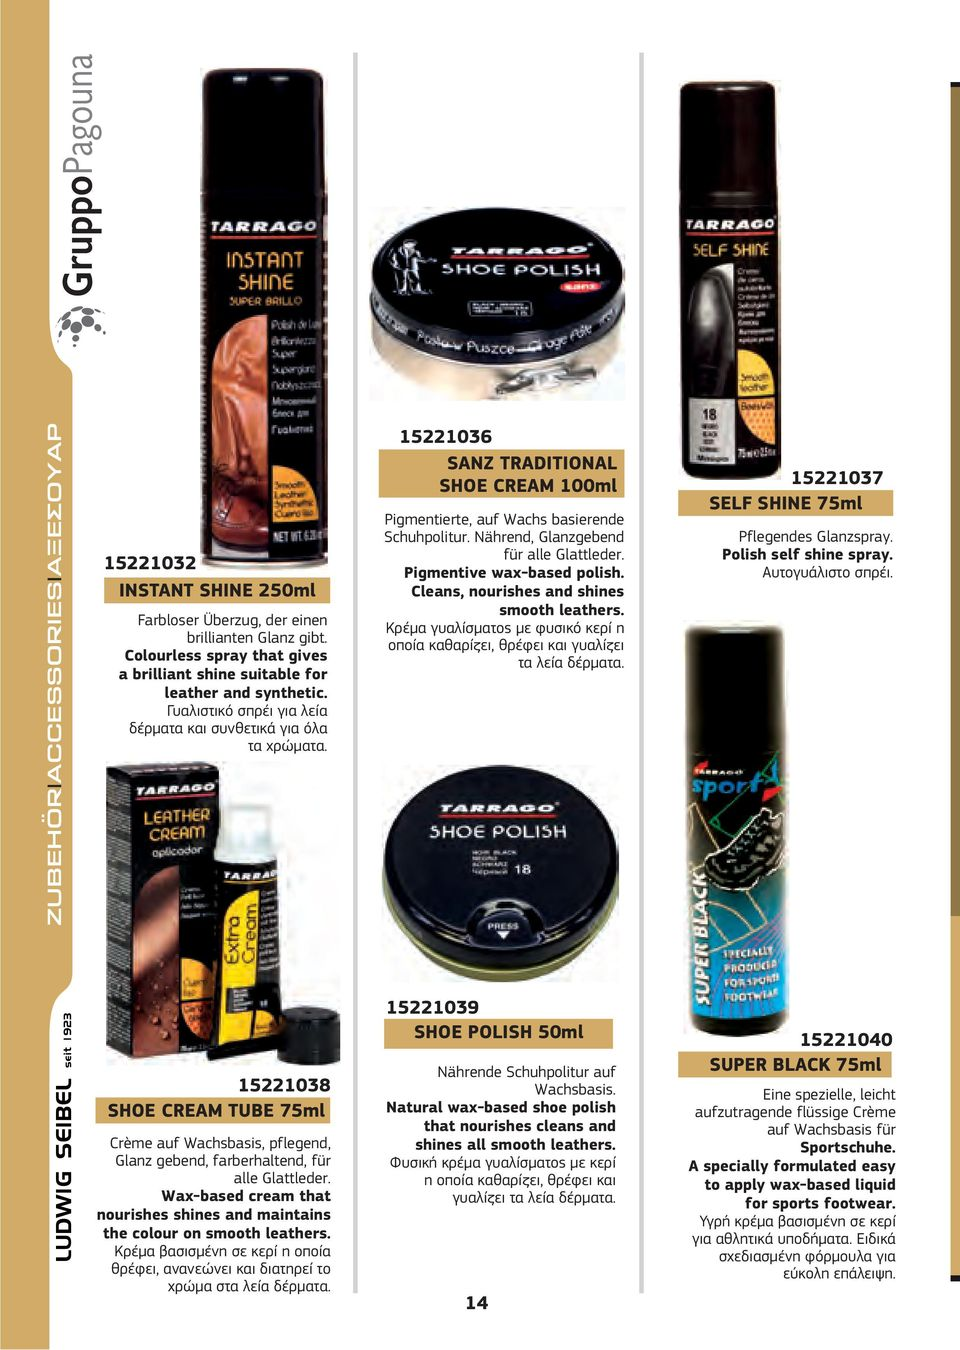 Nährend, Glanzgebend für alle Glattleder. Pigmentive wax-based polish. Cleans, nourishes and shines smooth leathers.